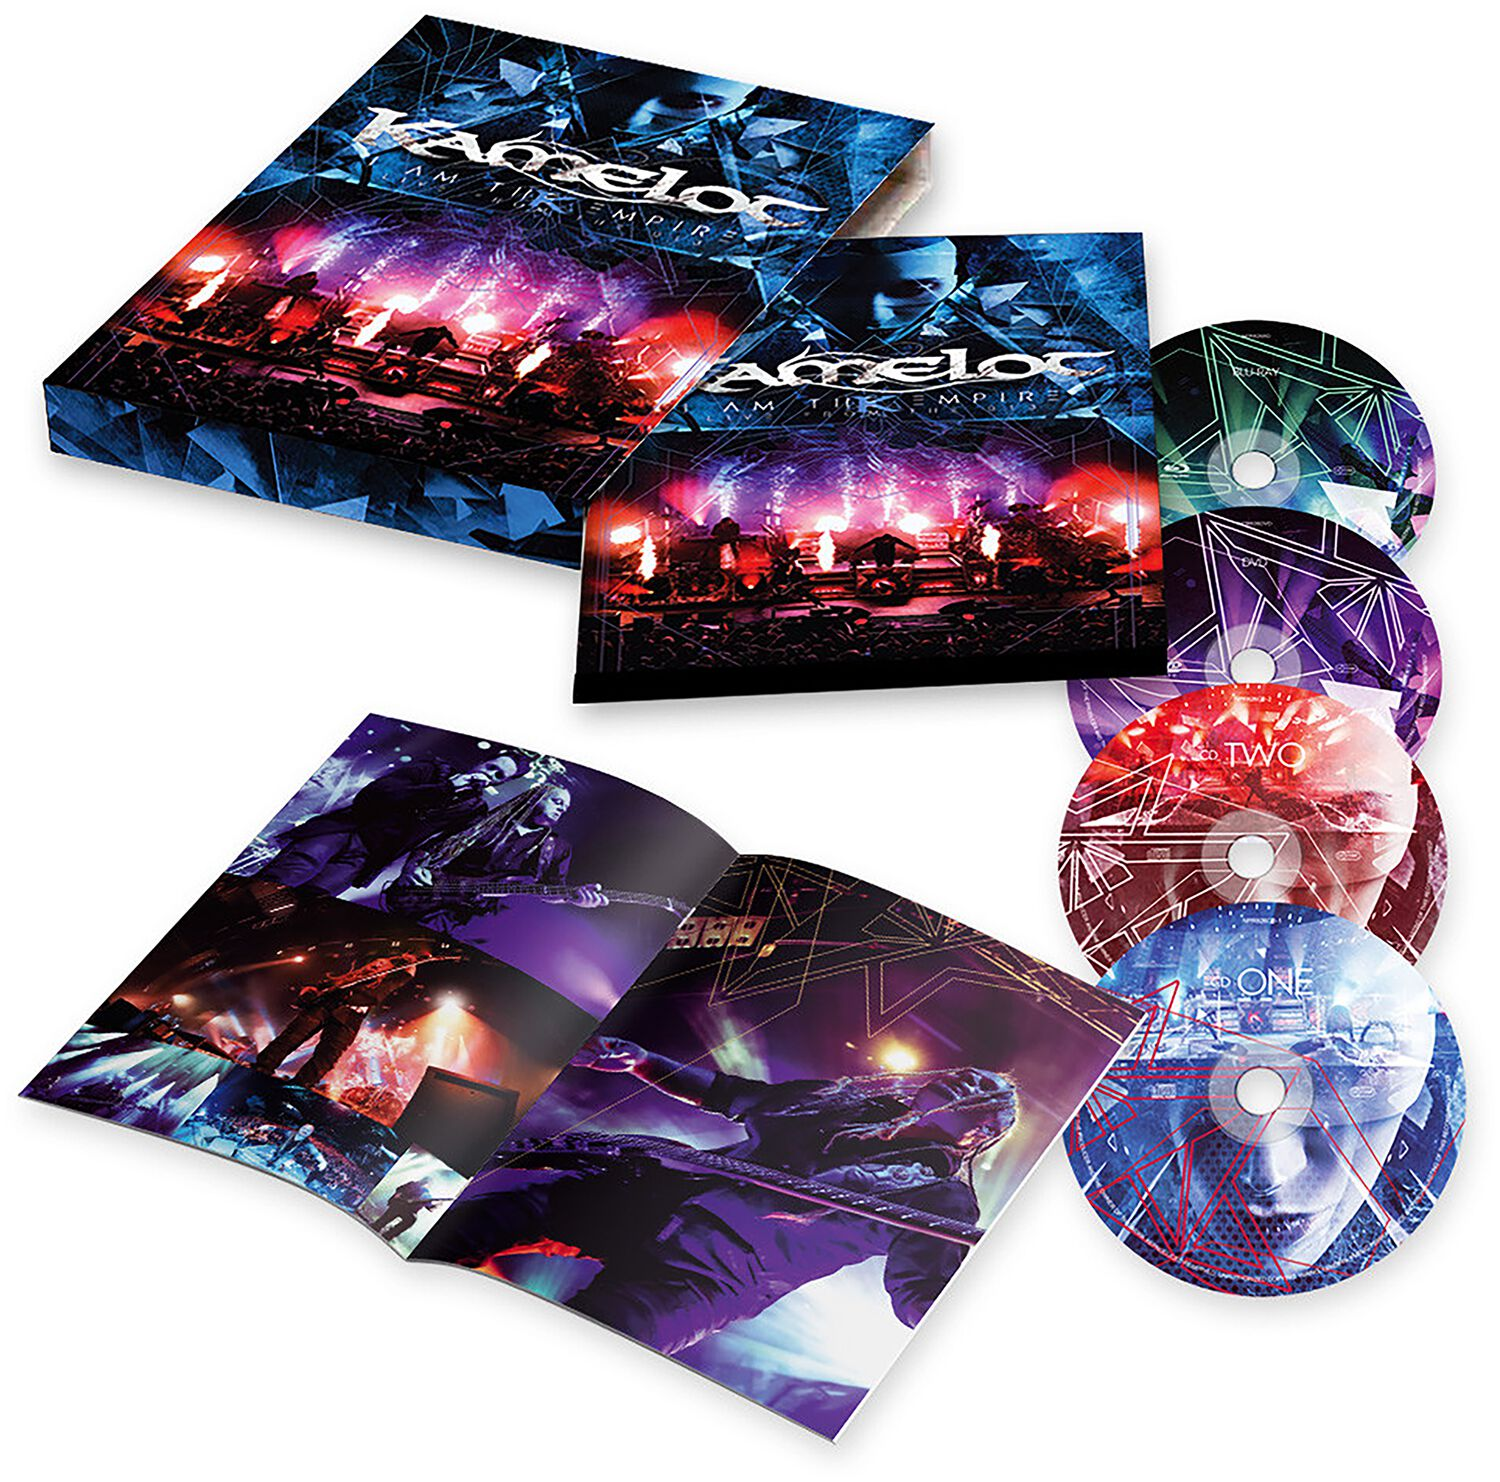 Image of Kamelot I am the empire - Live from the 013 CD & DVD & Blu-ray Standard